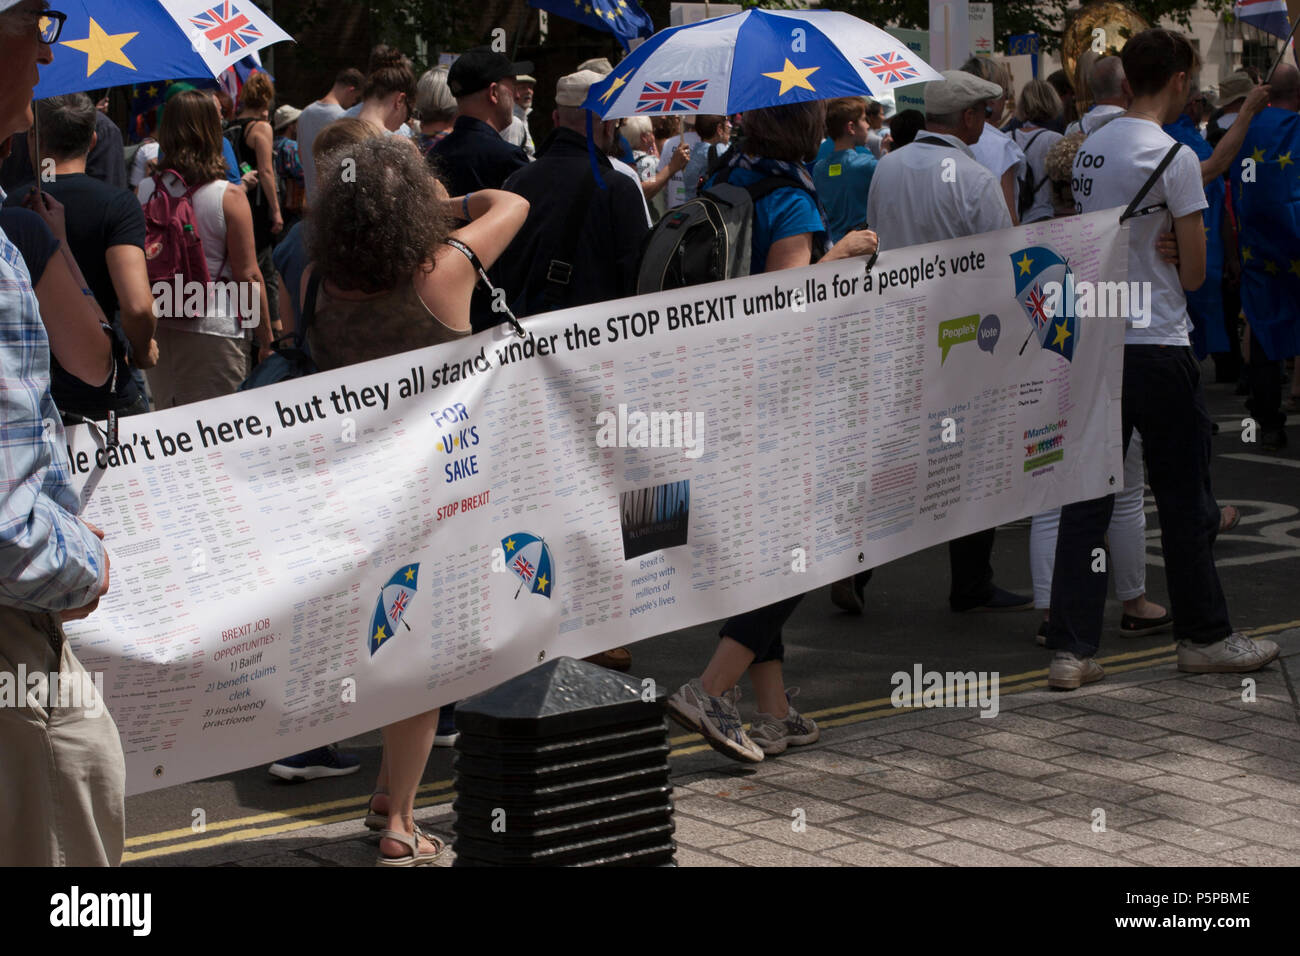 People's Vote March, London, UK, 23rd June 2018. Banner: We can't be here, but they all stand under the STOP BREXIT umbrella #MarchForMe - Stock Image